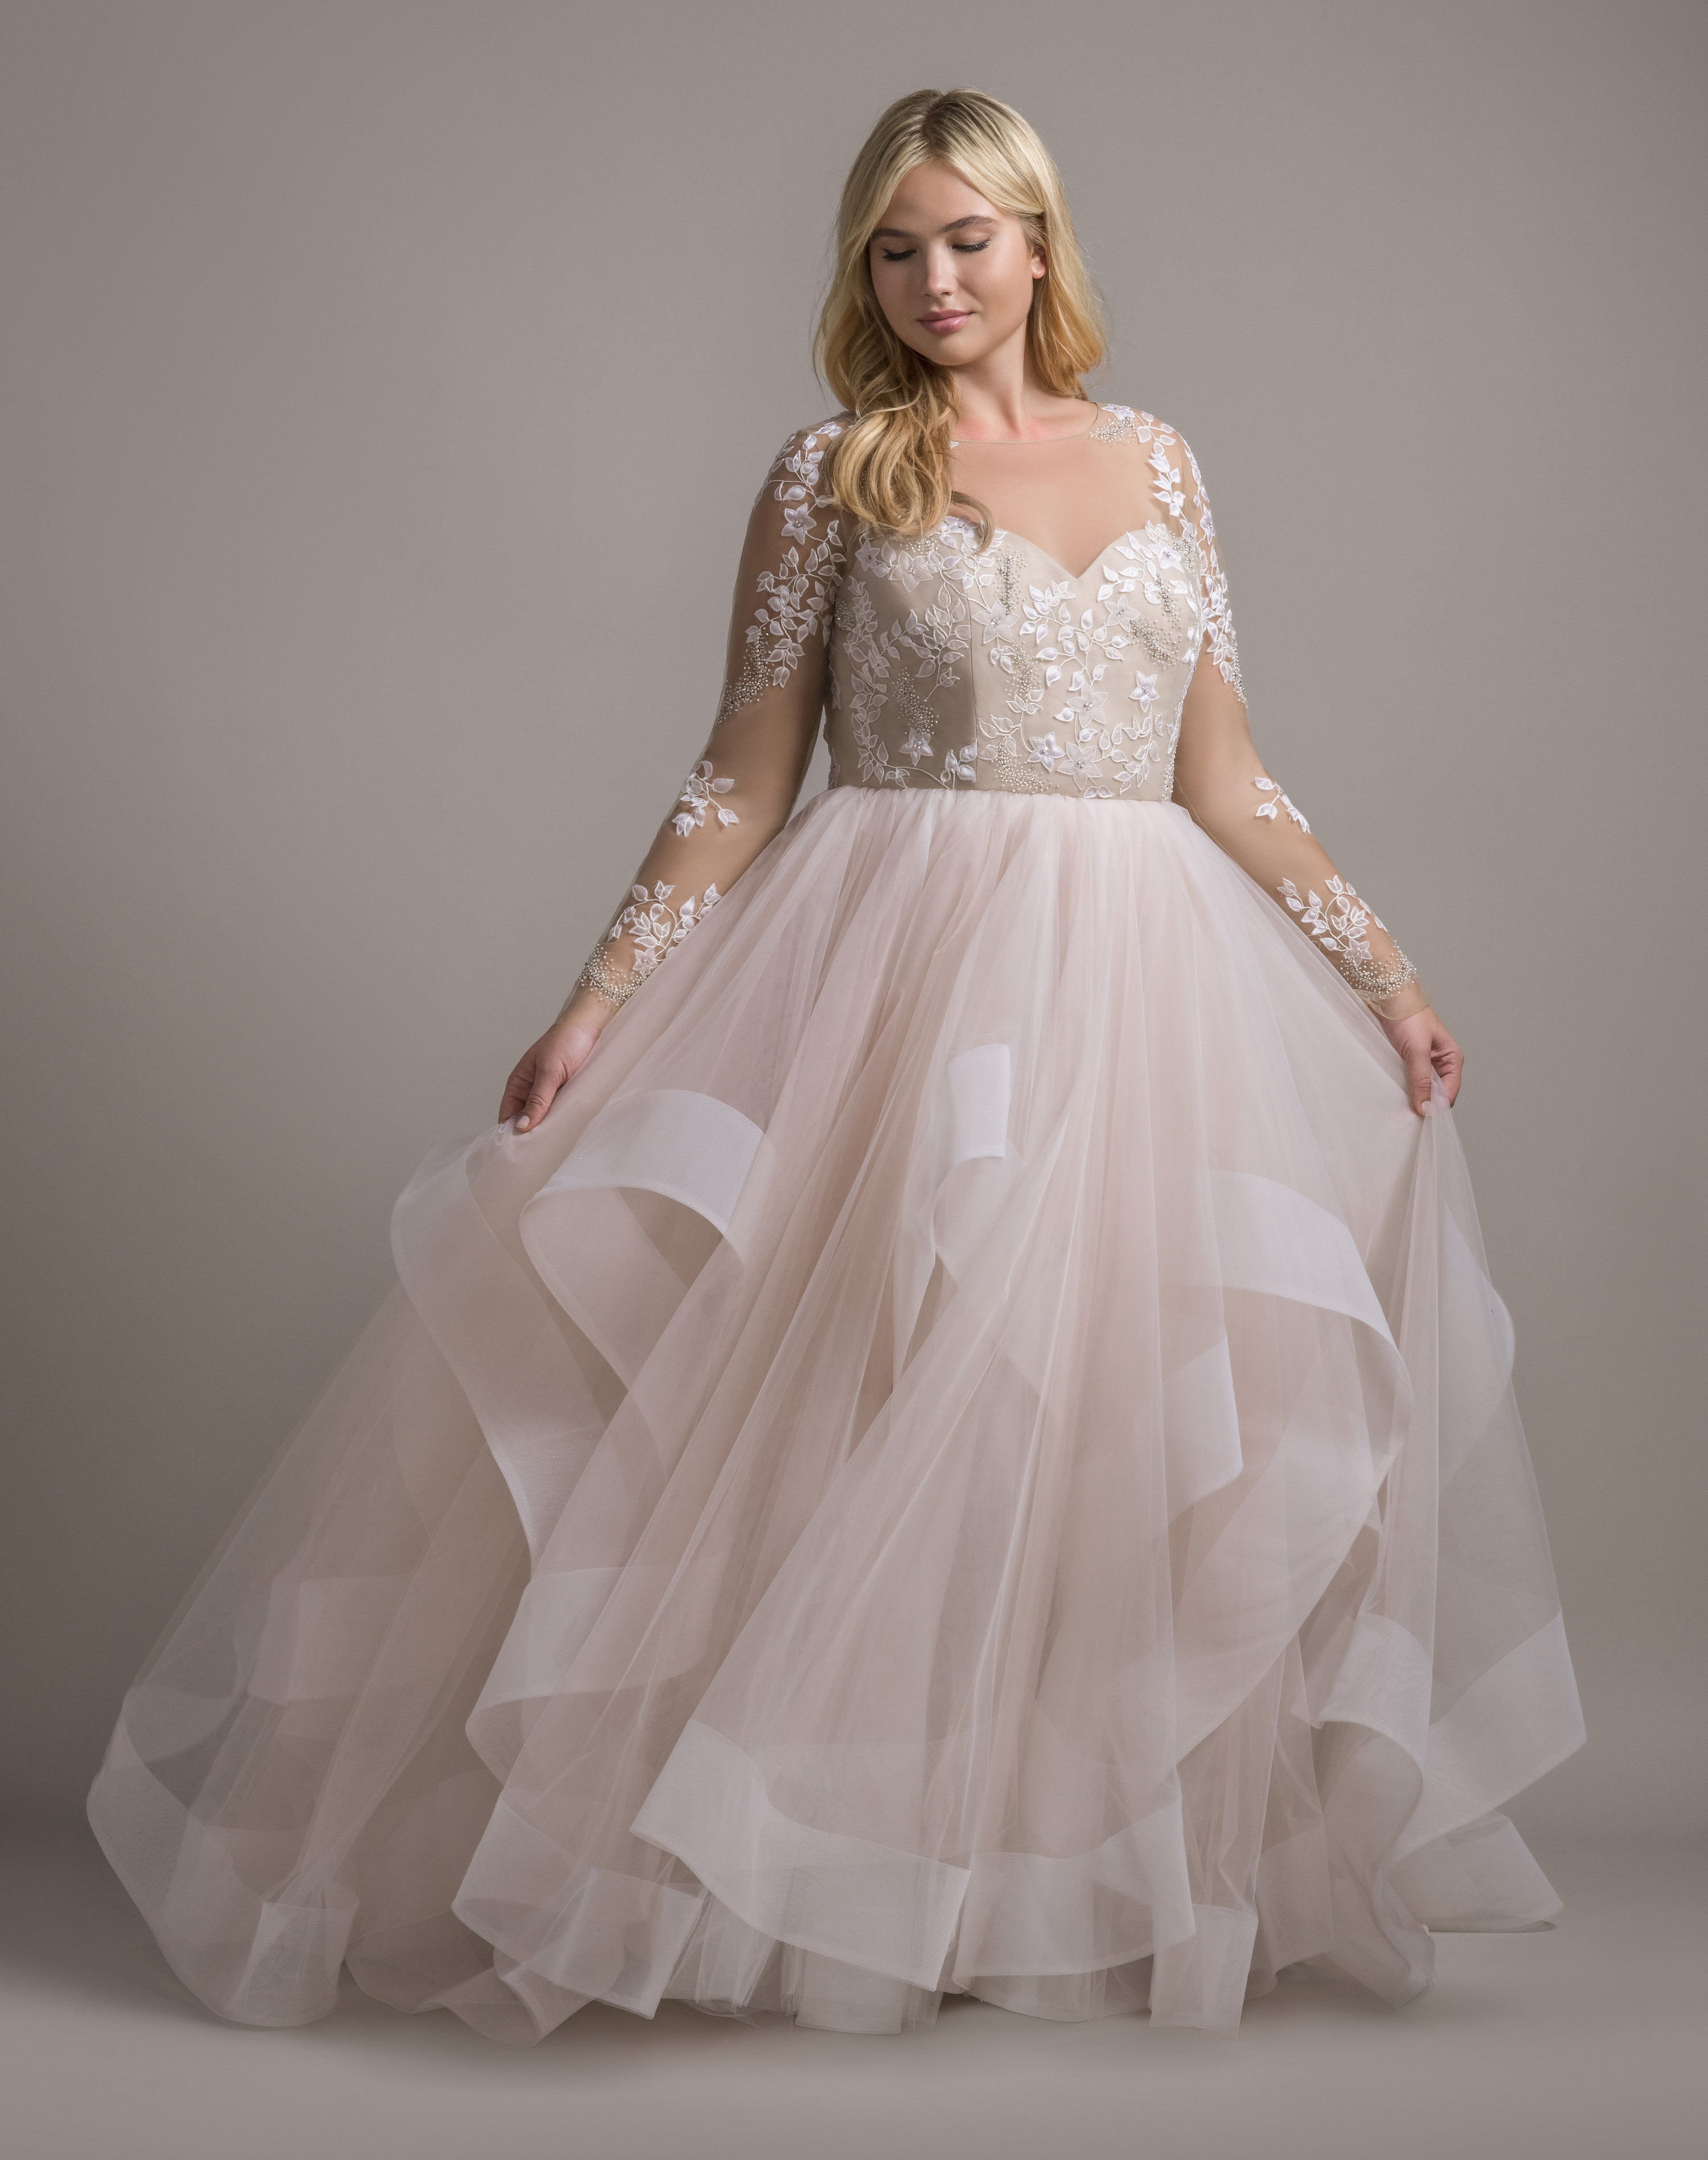 Bridal Gowns And Wedding Dresses By Jlm Couture Style 6654 Lorelei